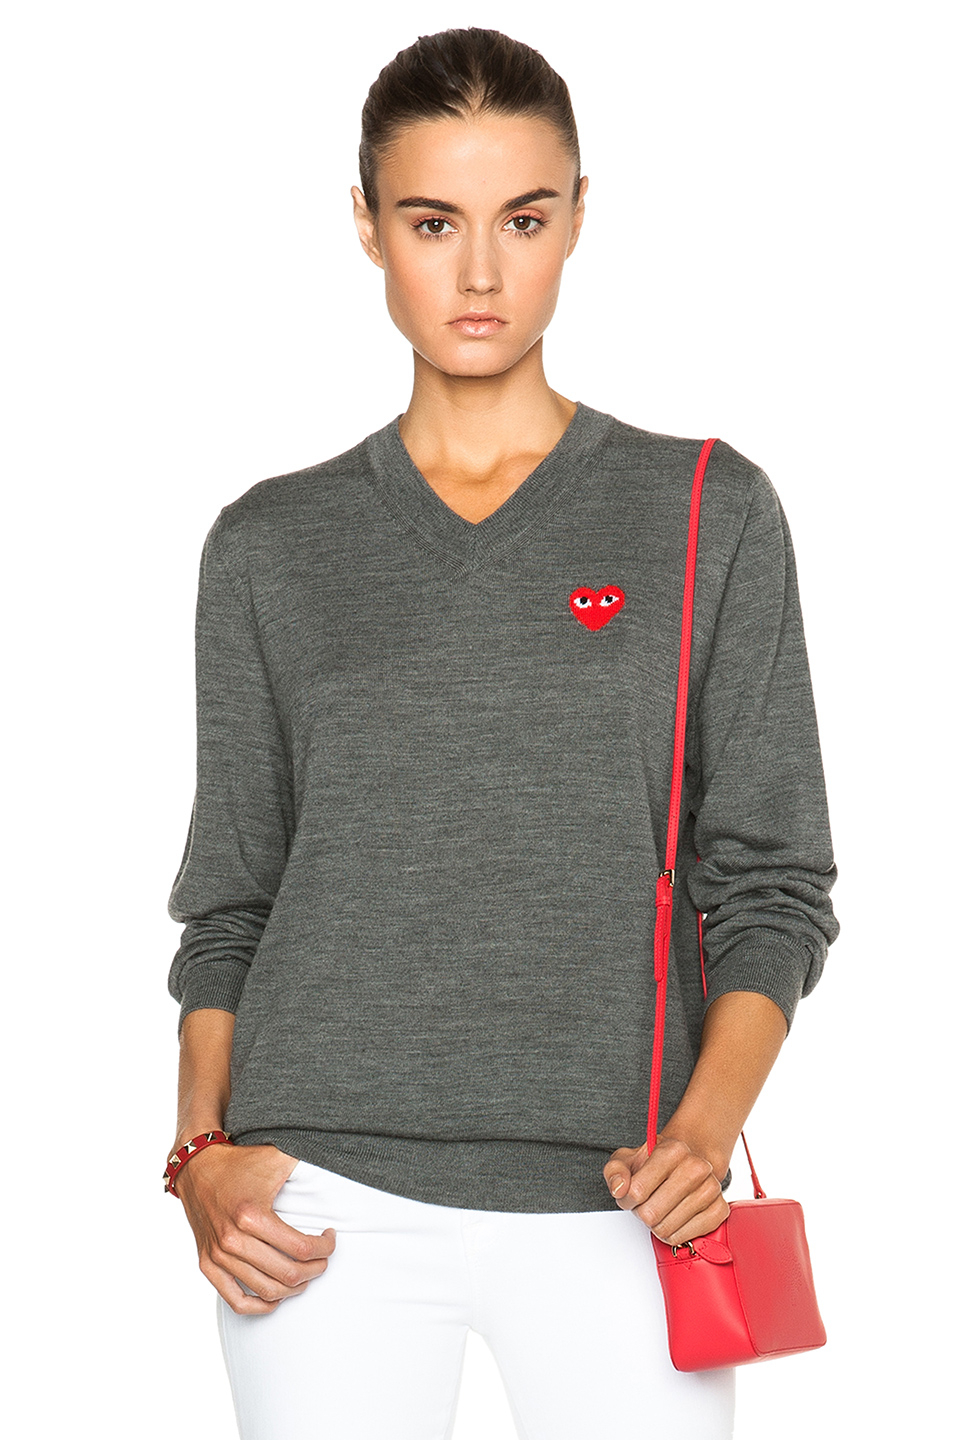 Lyst - Play Comme Des Garçons Wool Jersey Intarsia Red Emblem Sweater in Gray